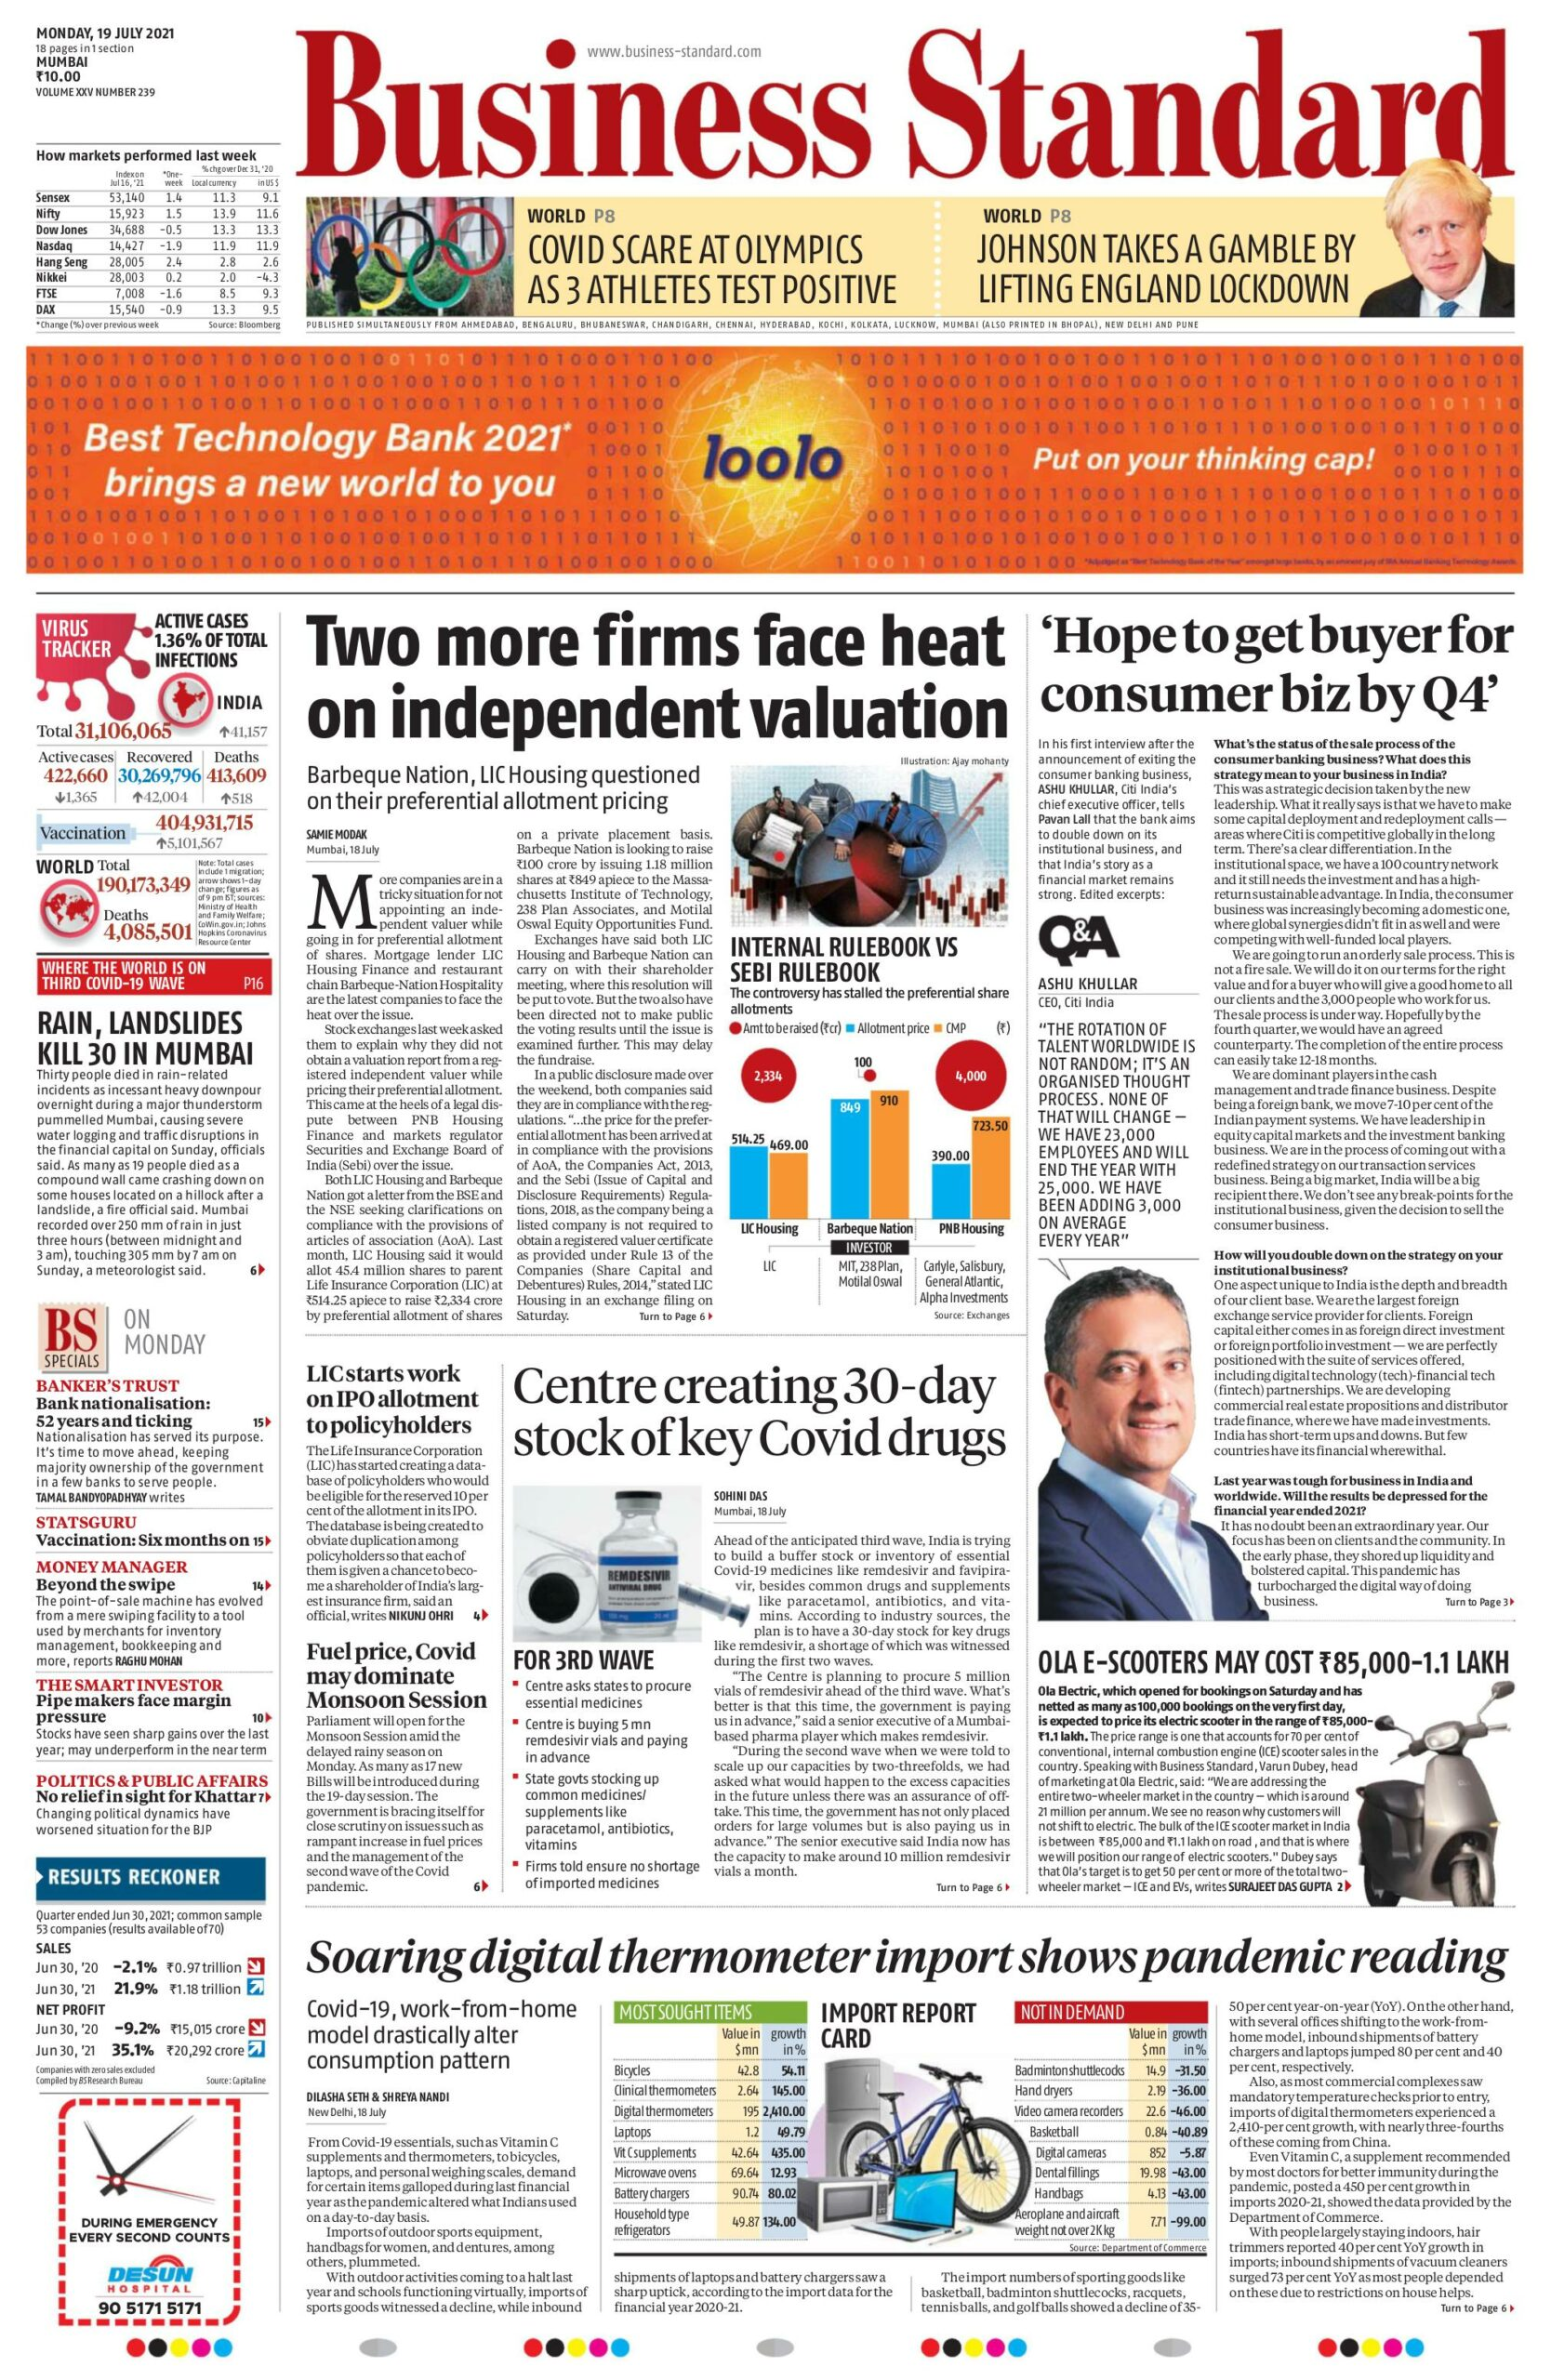 Business Standard 19th July 2021